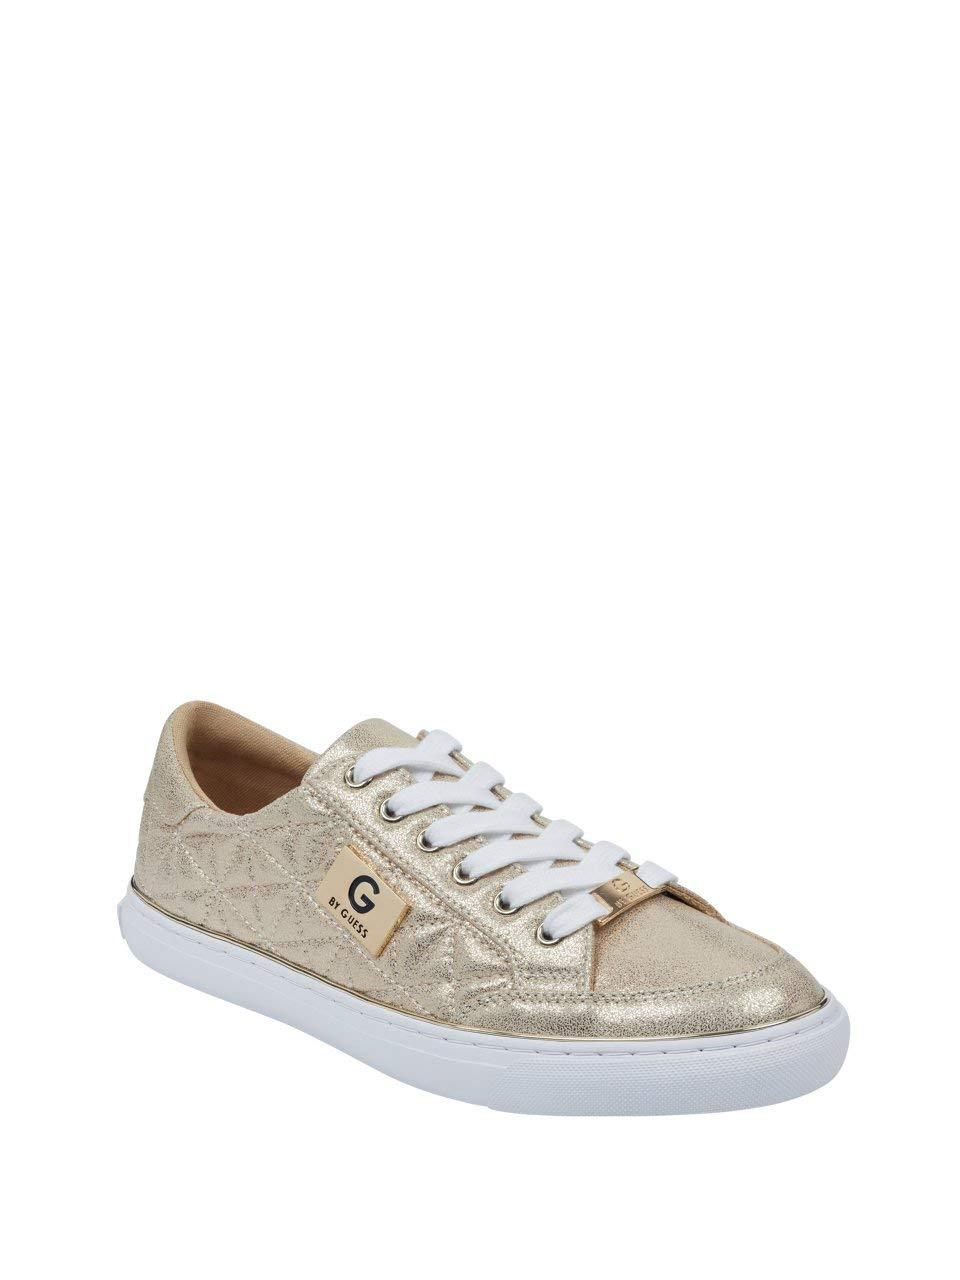 GUESS Womens Omerica Quilted Sneakers